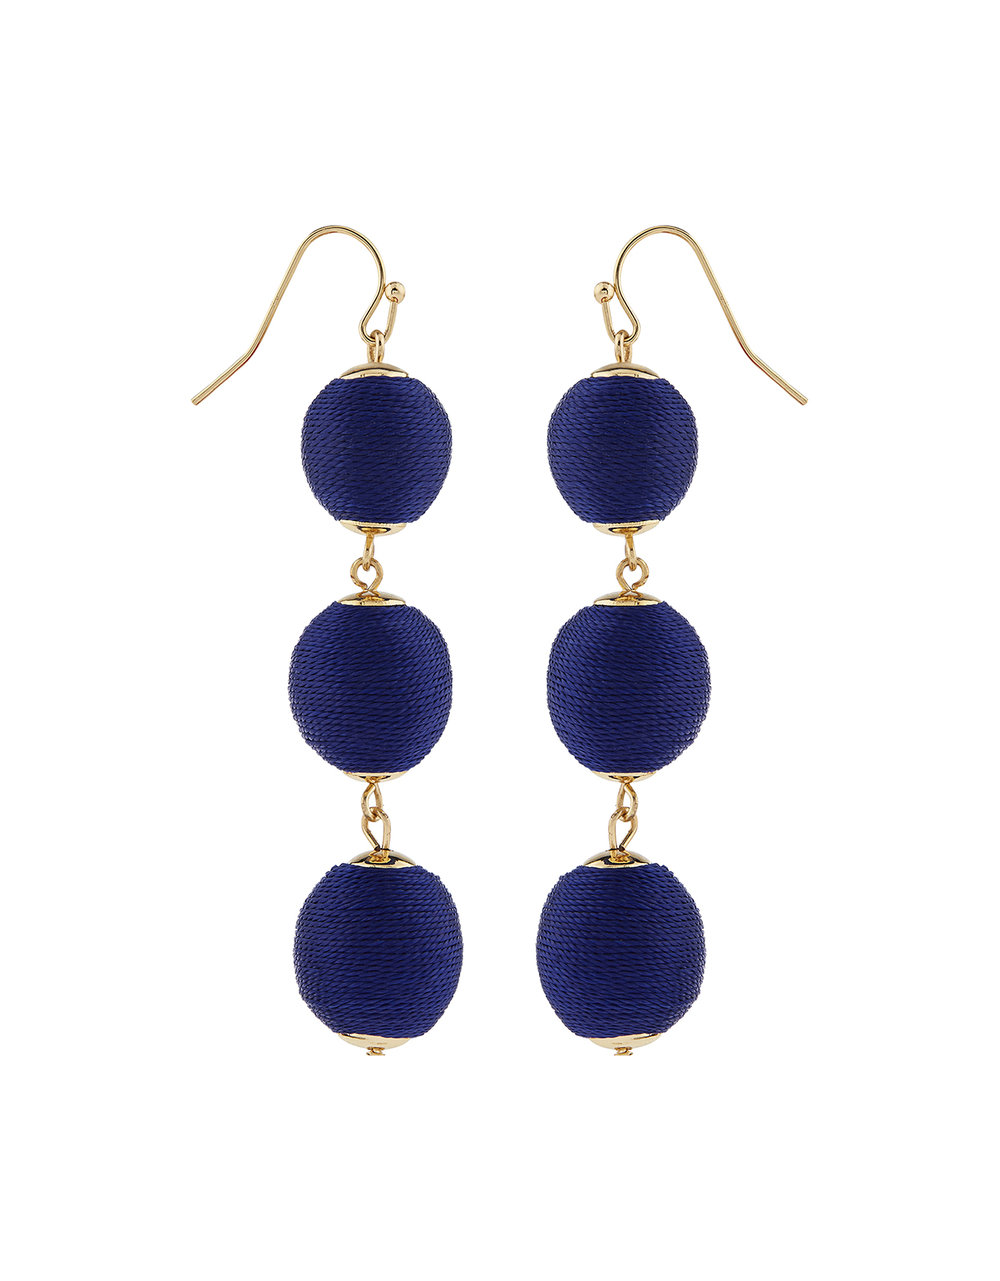 Accesorize THREAD WRAPPED BALL STATEMENT EARRINGS